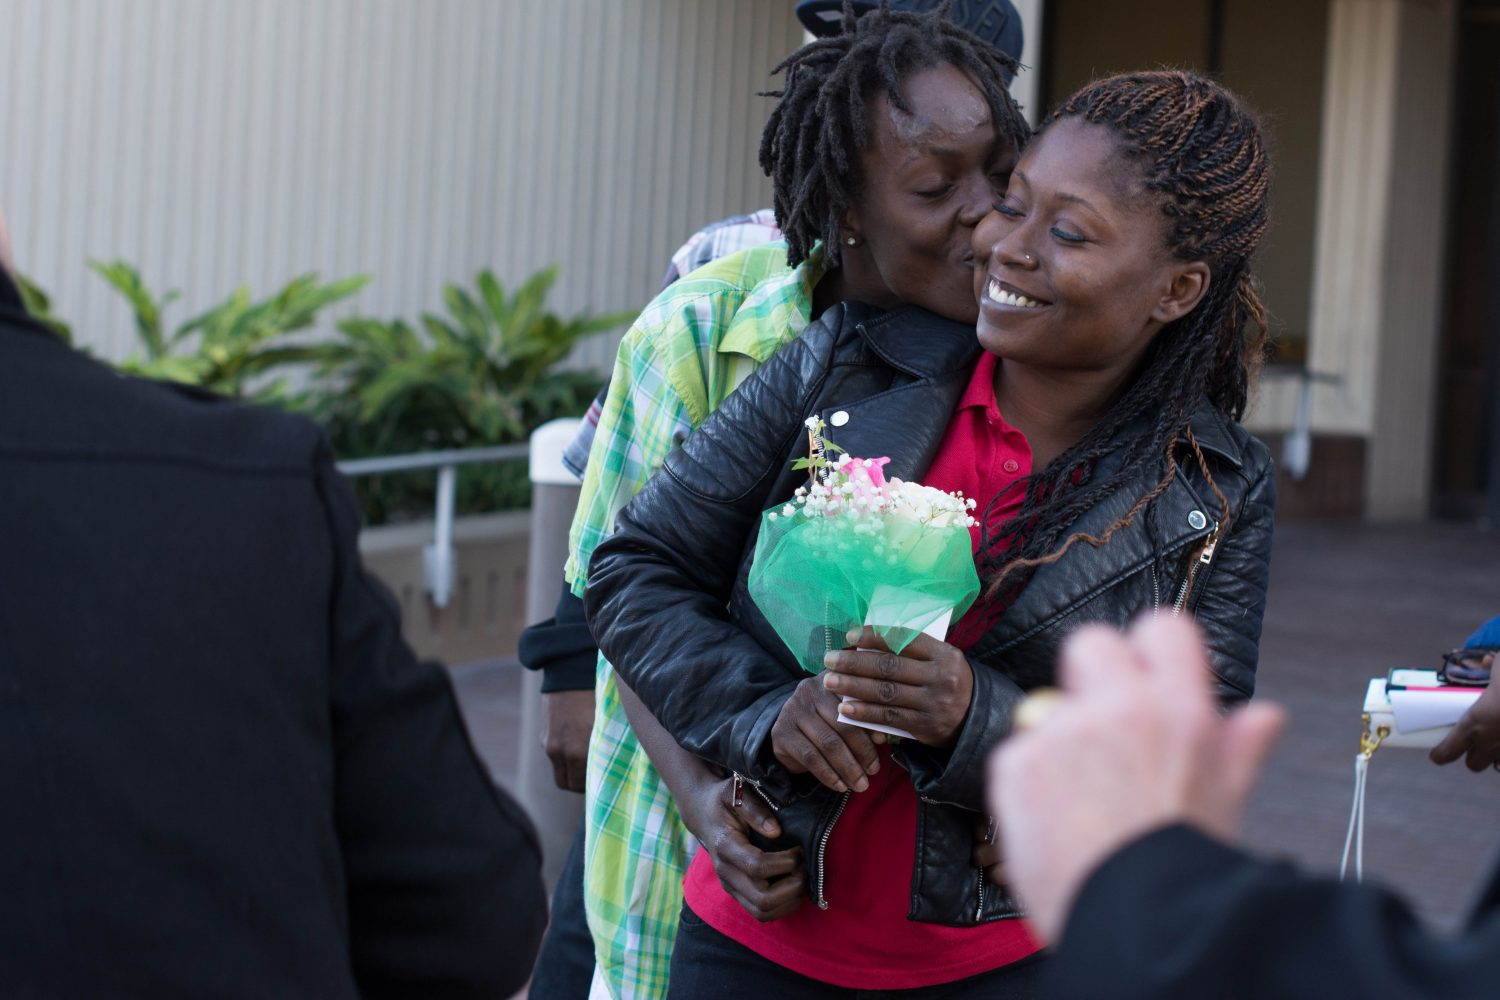 Quintyra White embraces newlywed wife LaKindra Ellis-White after receiving their marriage license outside the Alachua County Courthouse on Tuesday, Jan. 6.